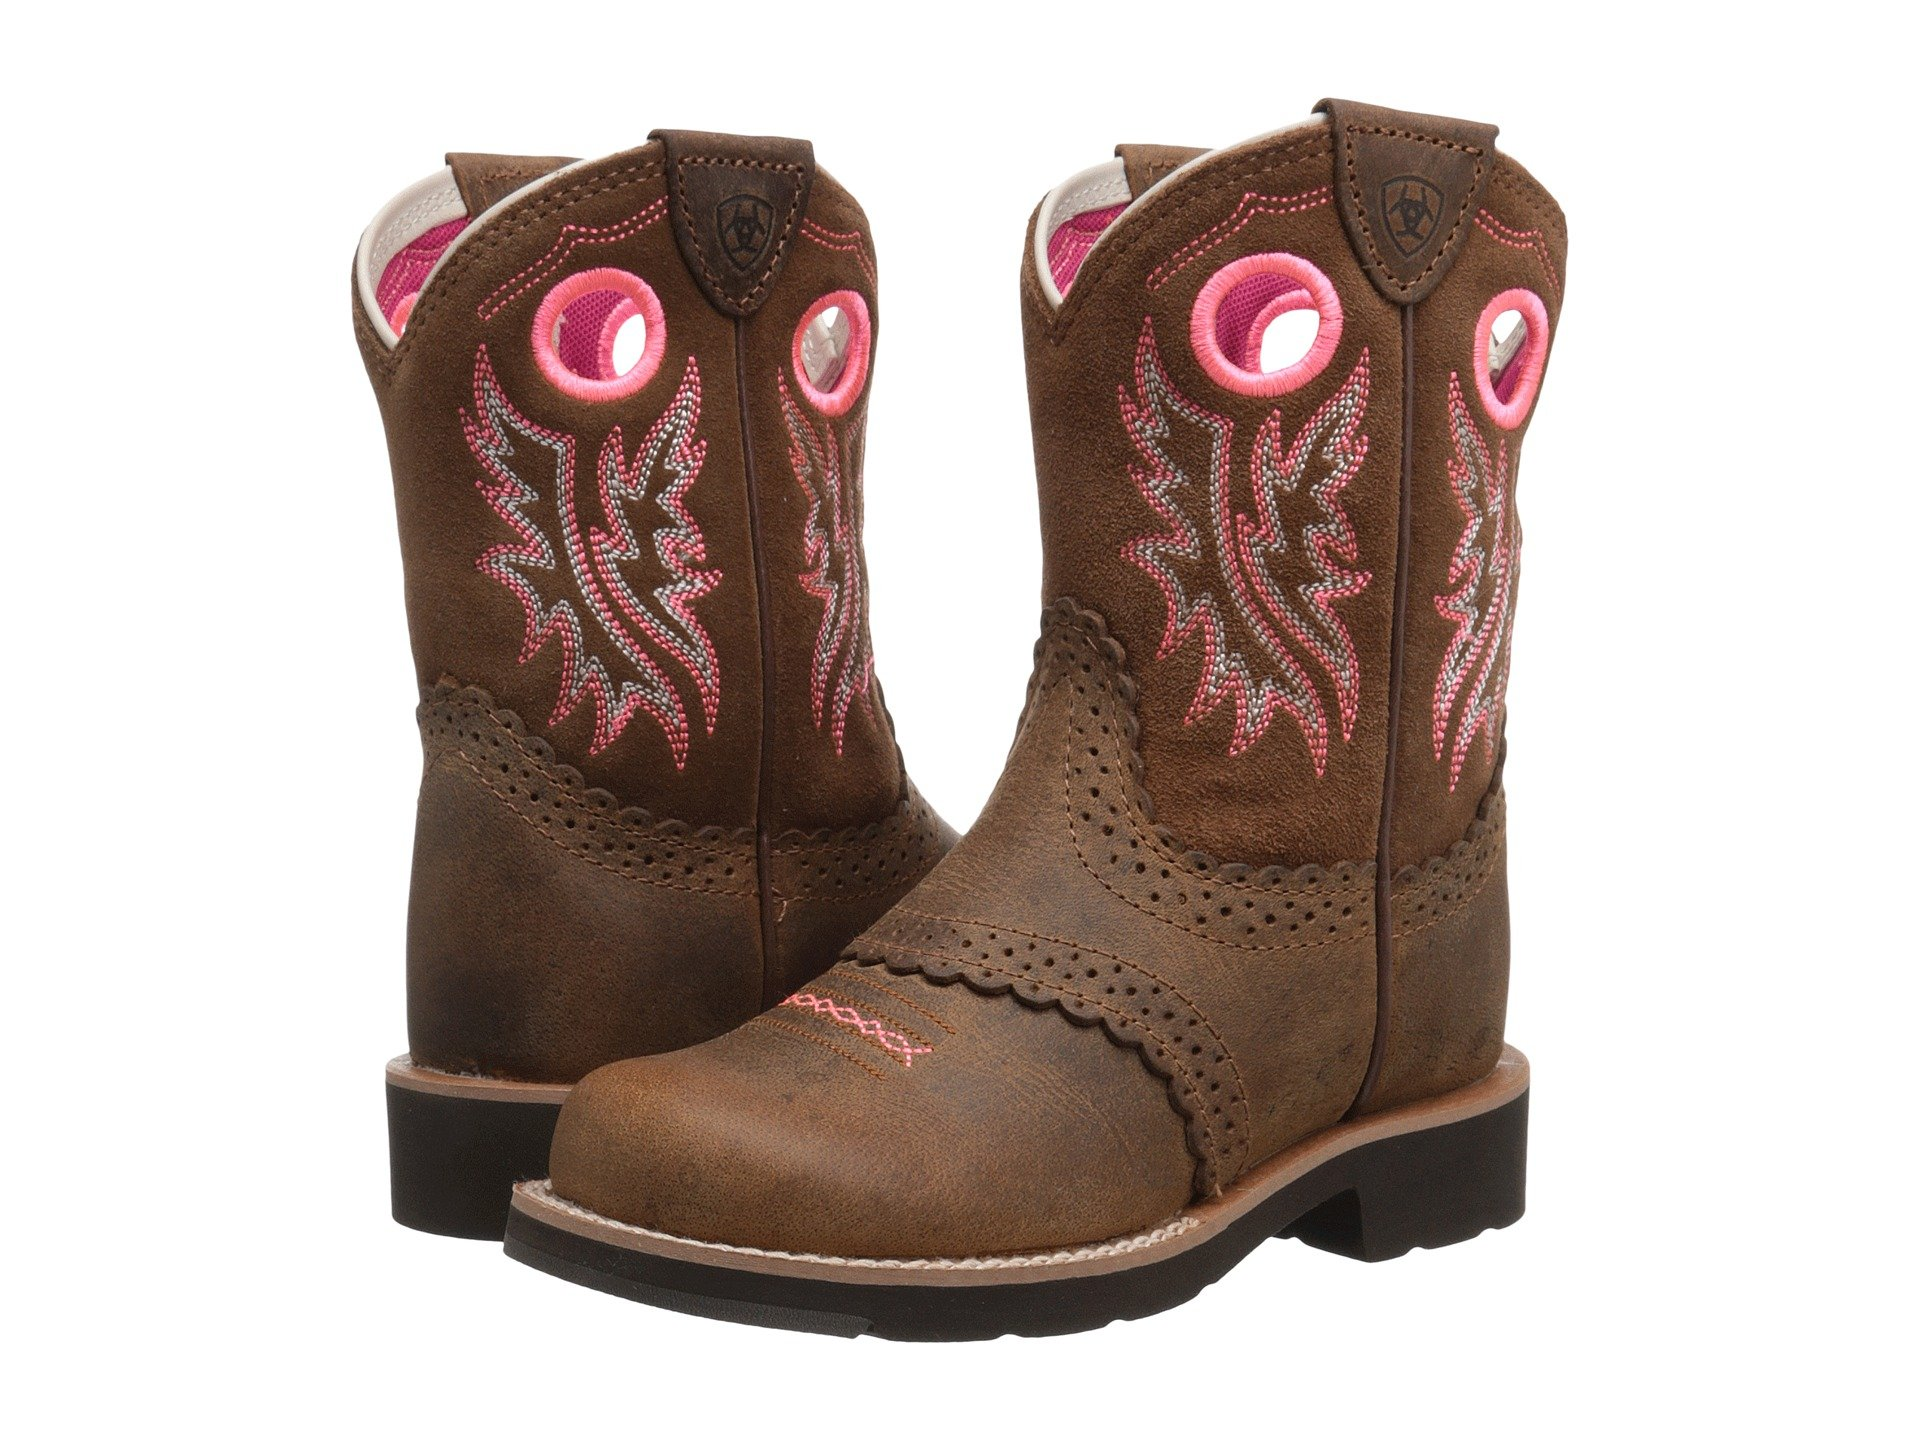 9f024990a86 Girls Ariat Kids Boots + FREE SHIPPING | Shoes | Zappos.com